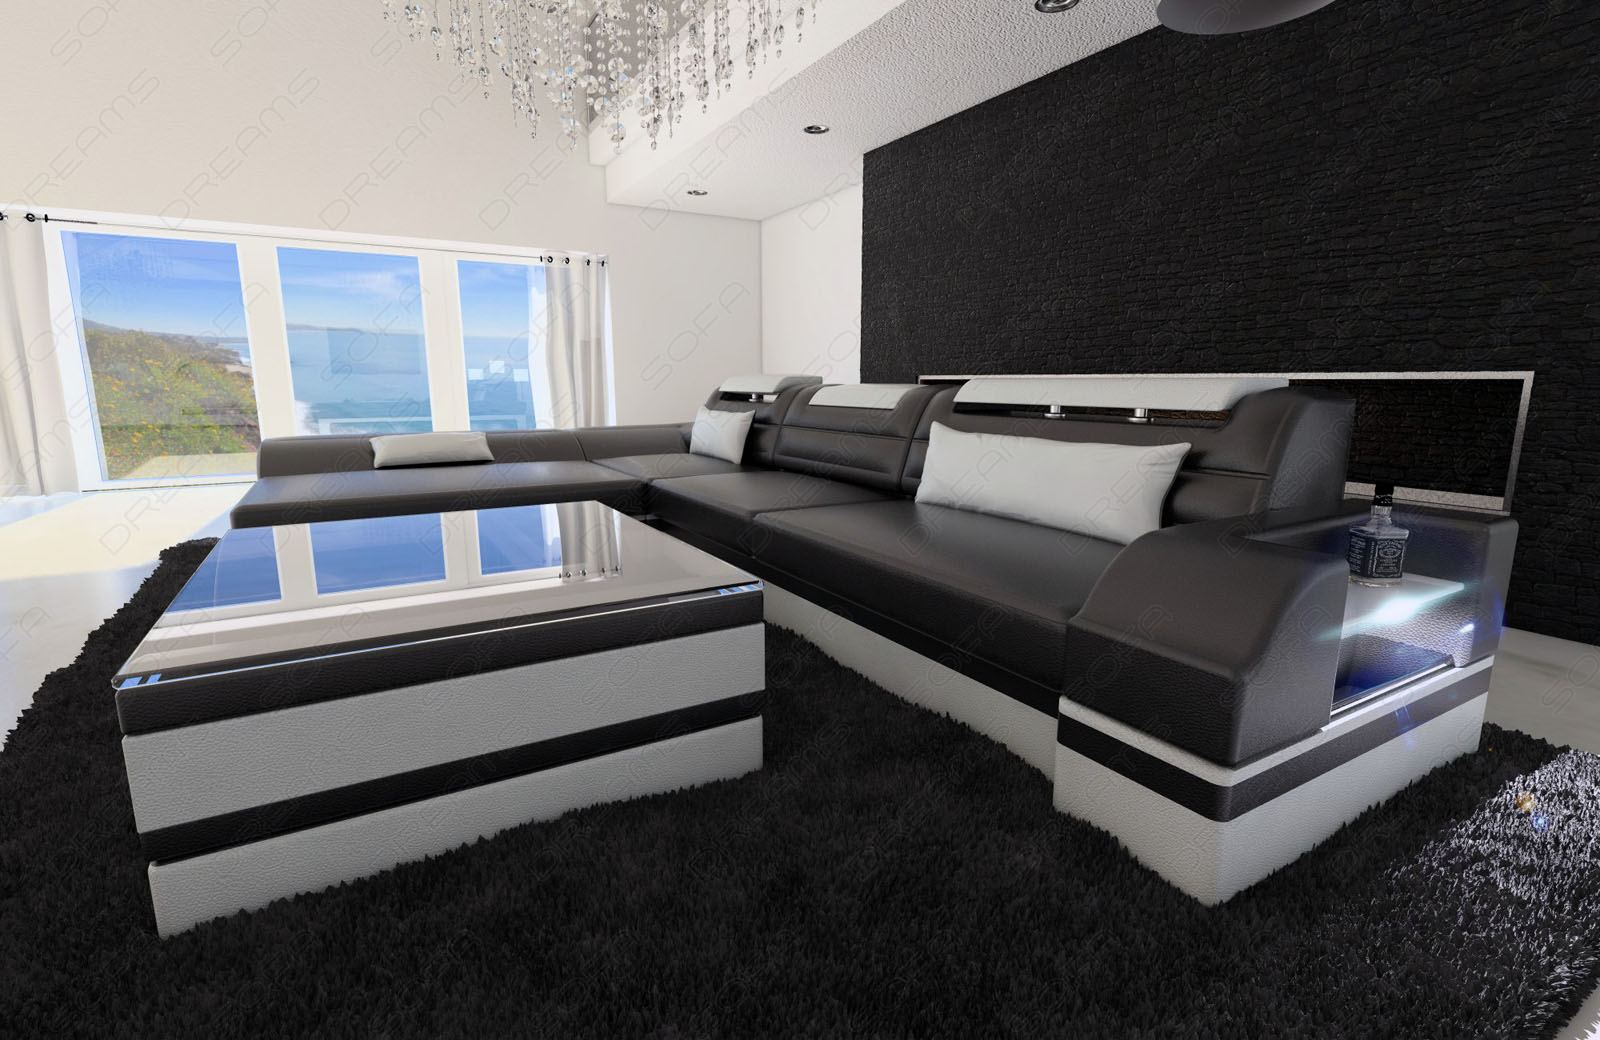 echtledercouch monza l form schwarz weiss ecksofa ottomane. Black Bedroom Furniture Sets. Home Design Ideas